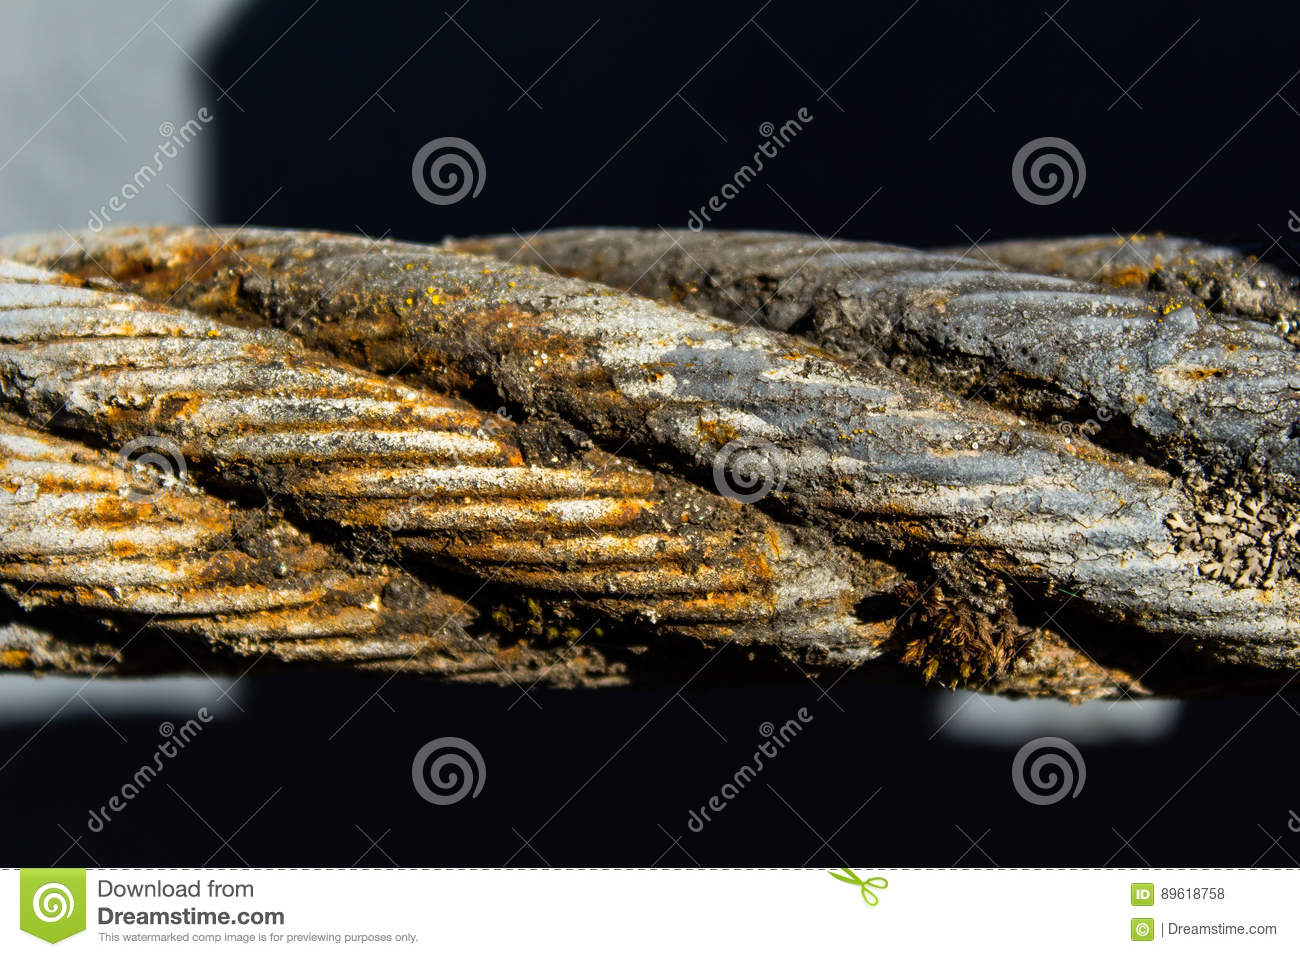 Old rusty steel wire rope stock photo. Image of abstract - 89618758